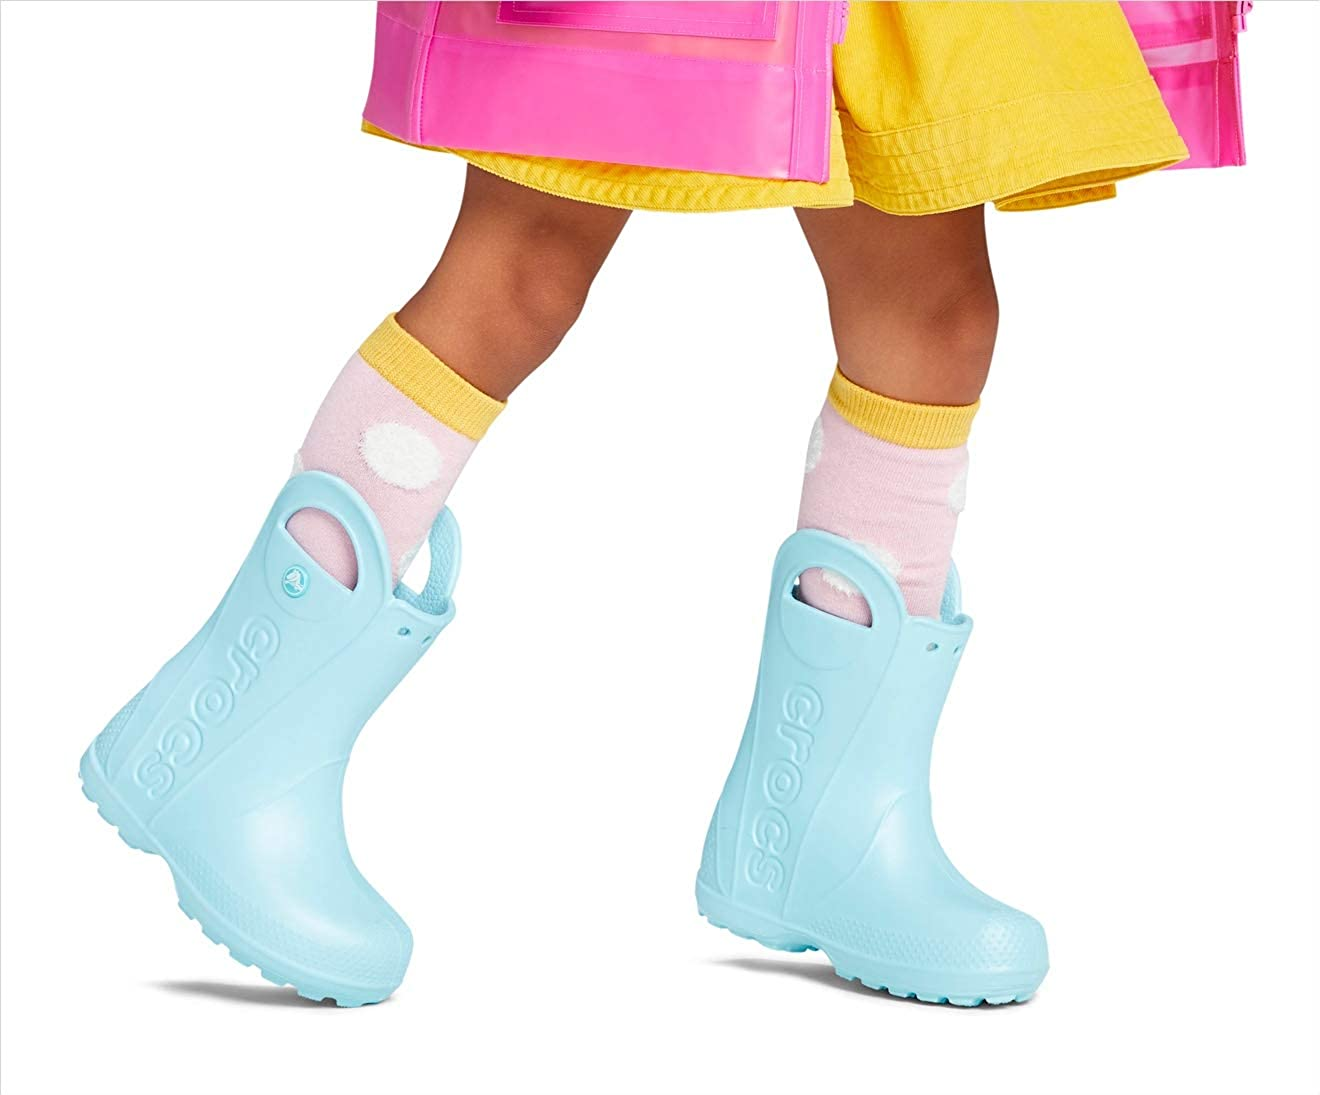 Girls Candy Pink Crocs Kids Handle It Rain Boots 2 M US Little Kids Boys Easy On for Toddlers Lightweight and Waterproof